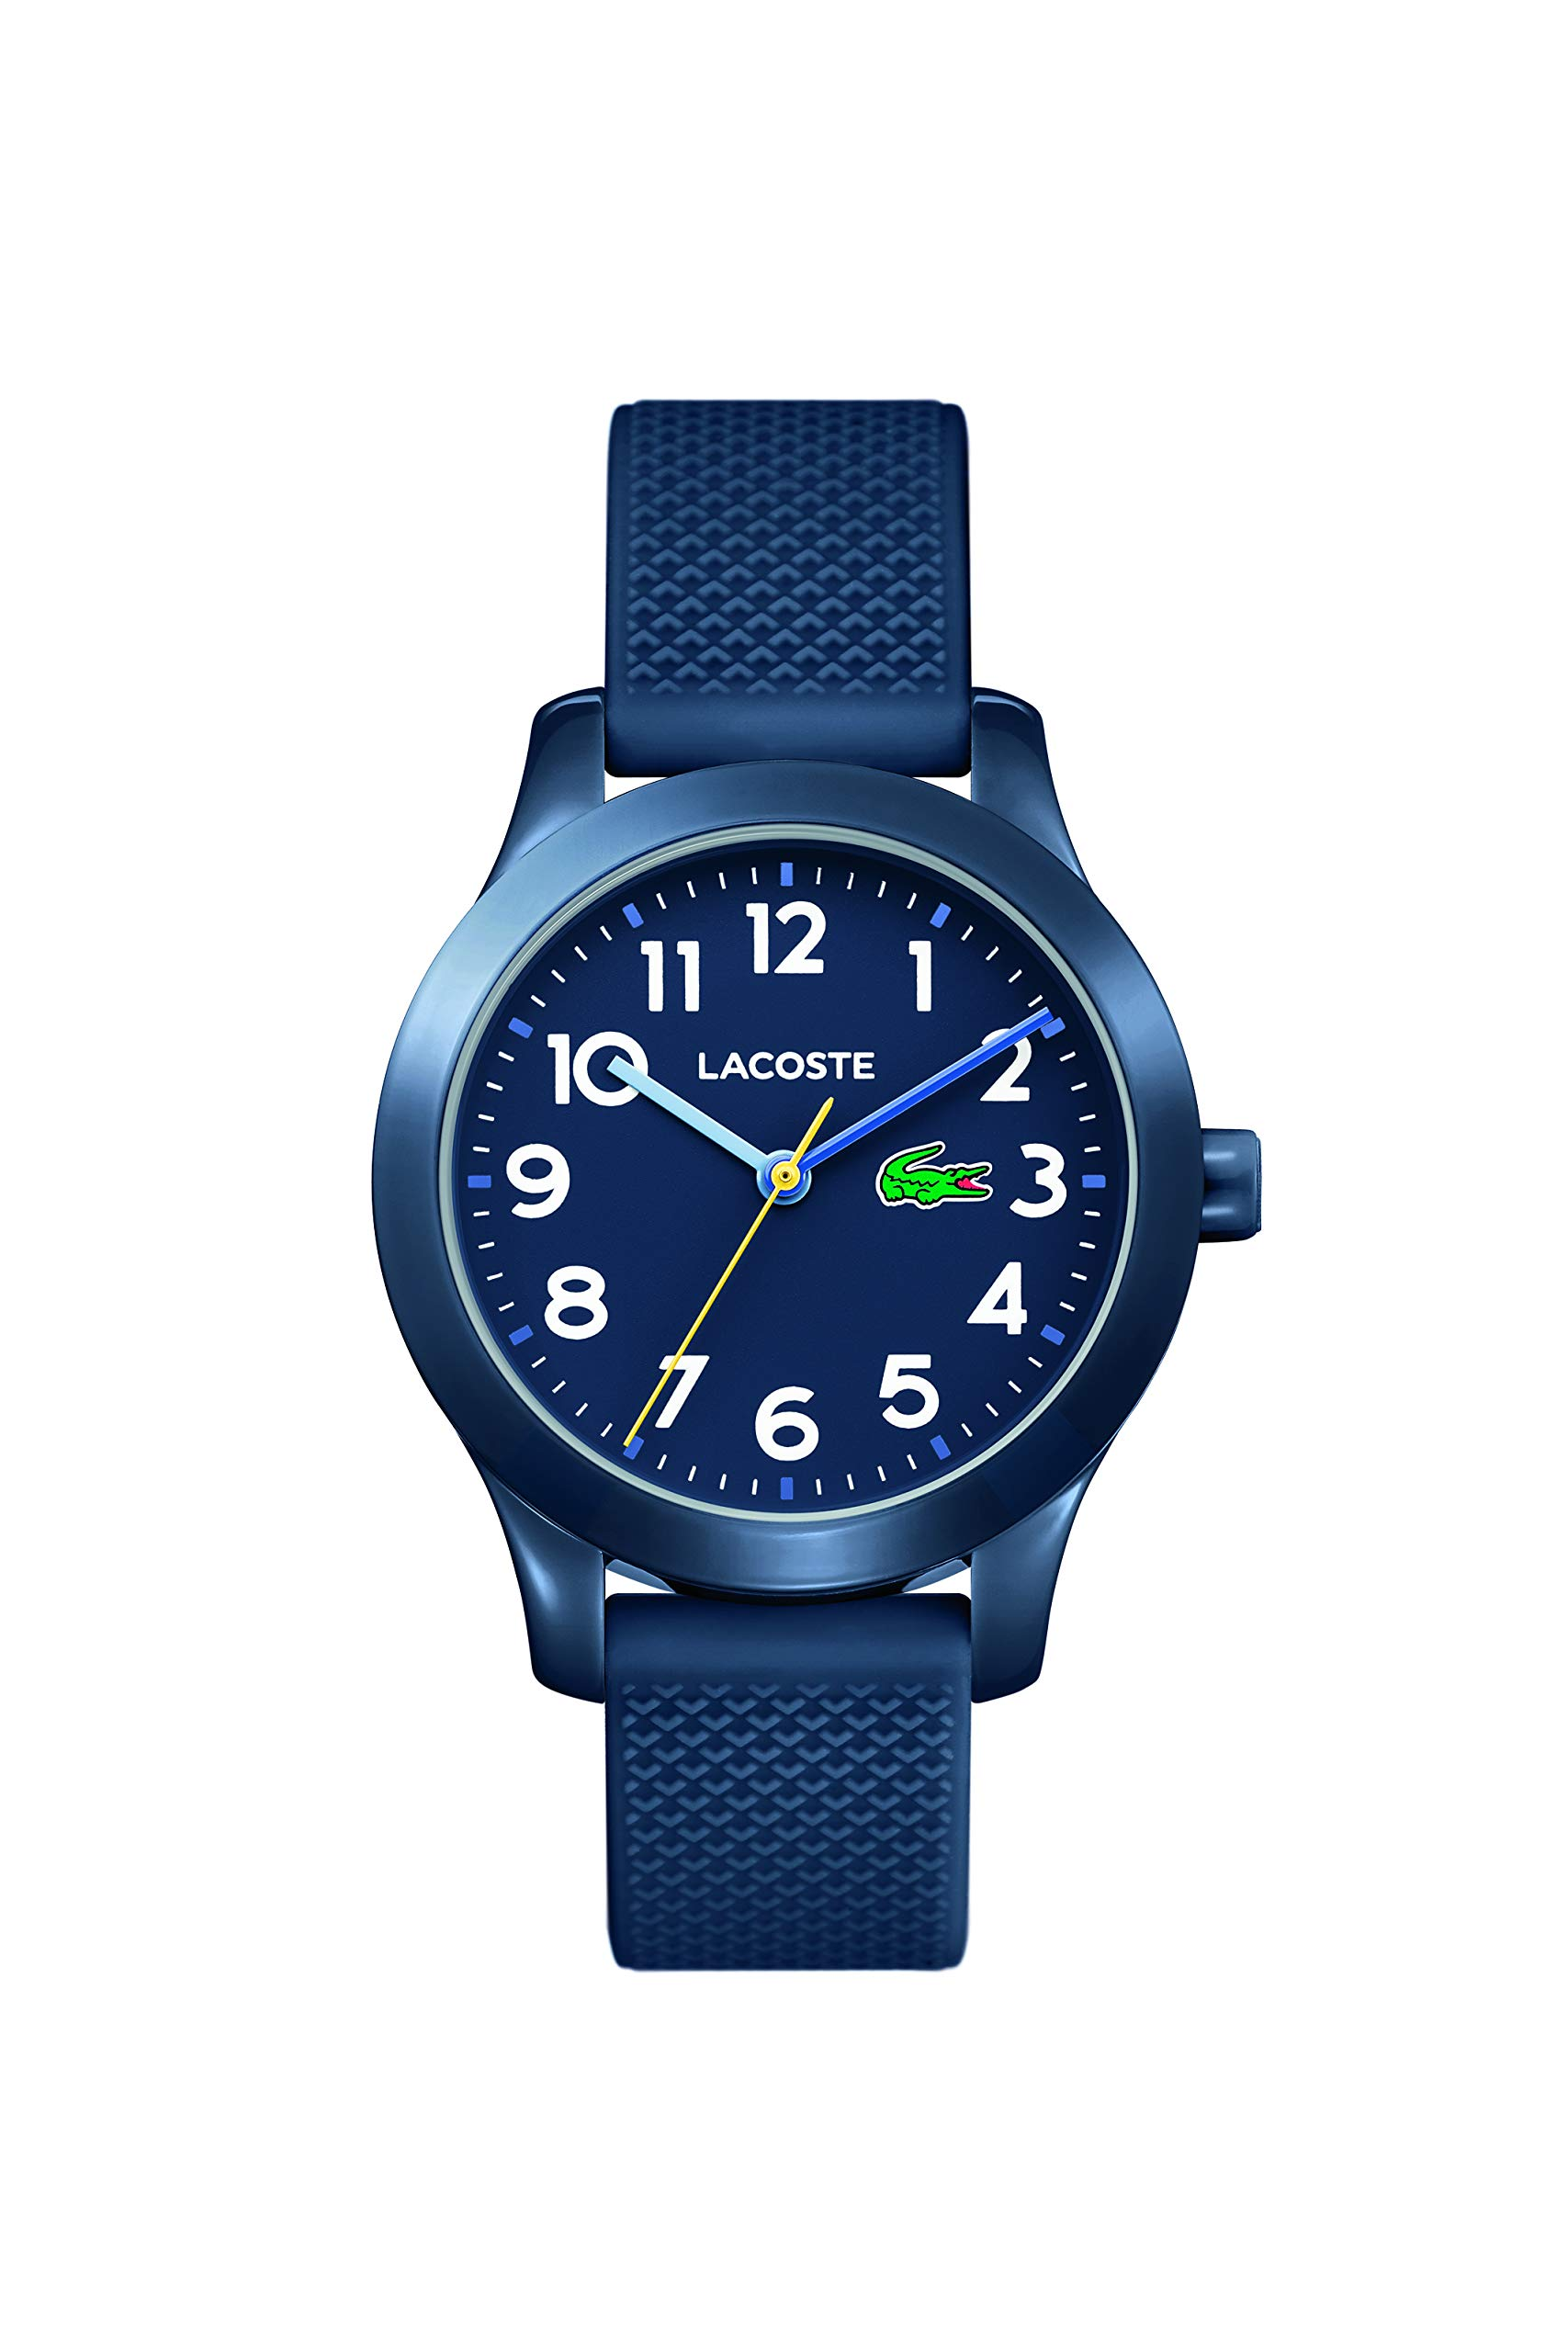 Lacoste Kids 12.12, Quartz TR-90 and Rubber Strap Casual Watch, Blue, Unisex, 2030002 by Lacoste